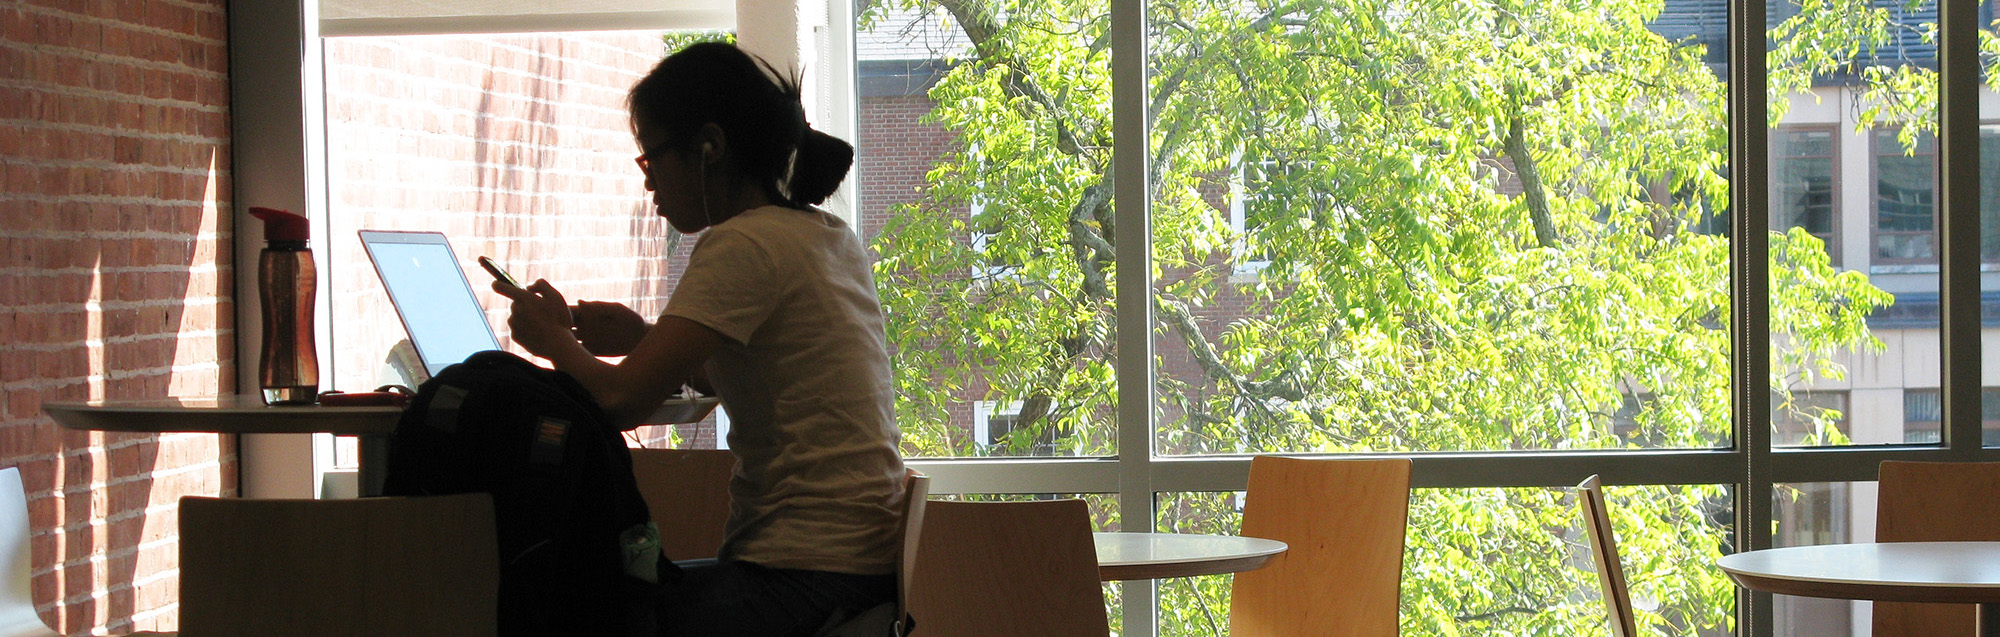 A student takes a break near a sunny window in South College.